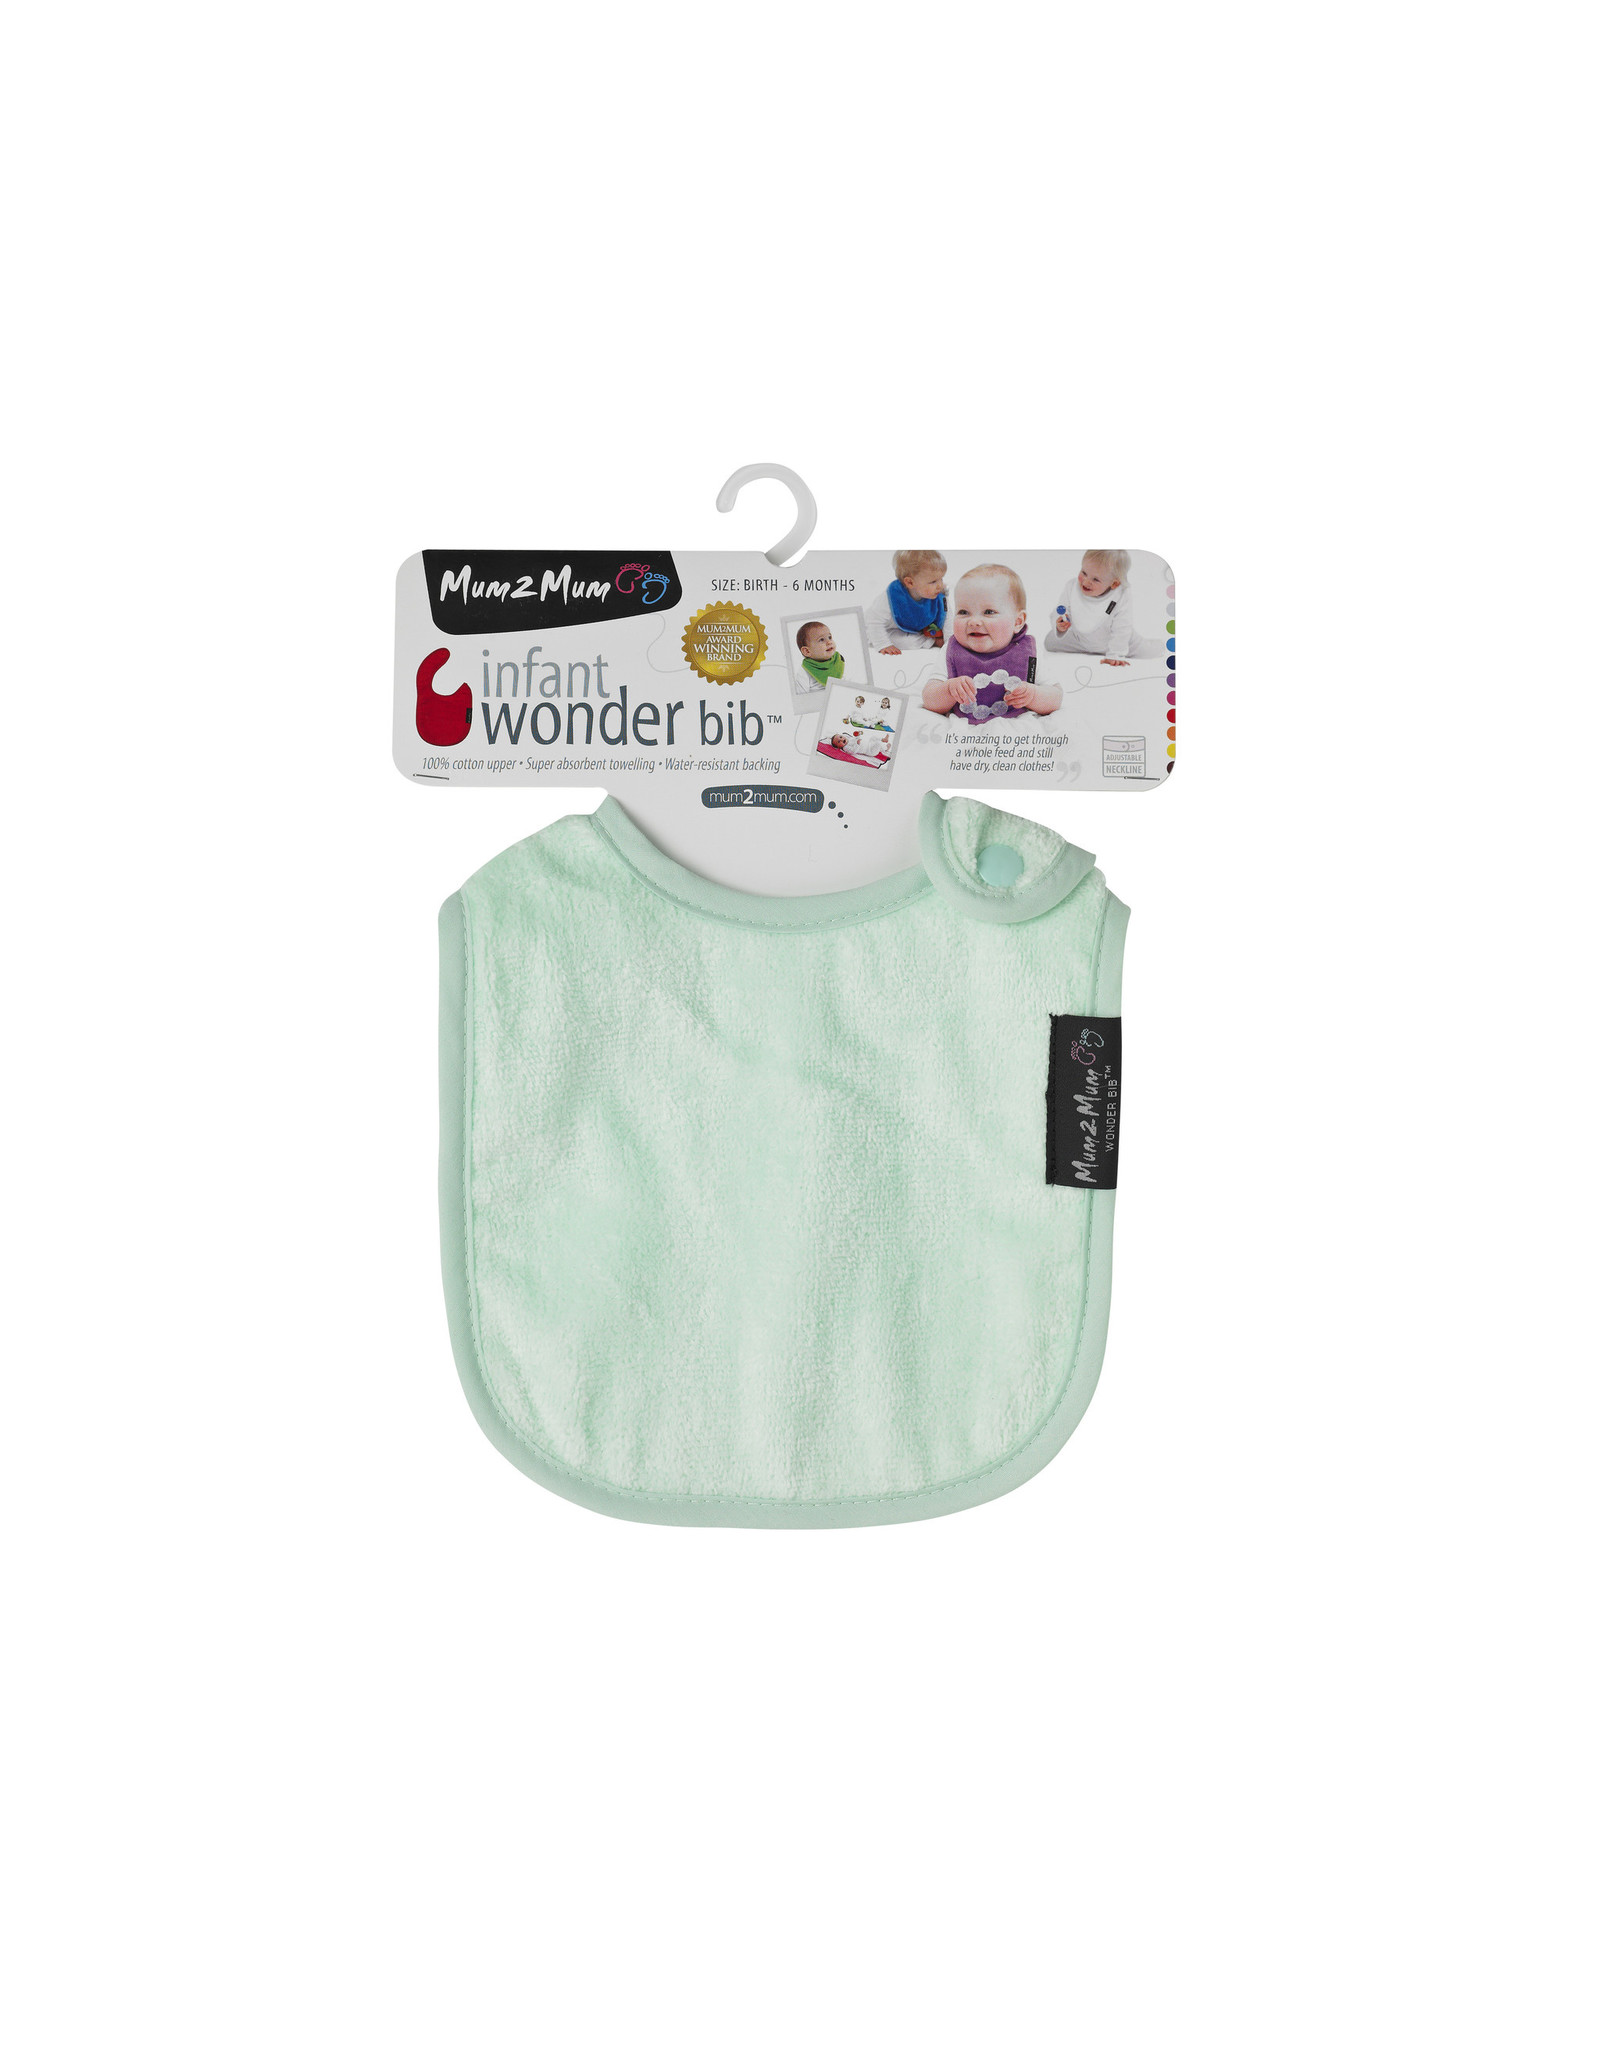 Mum2Mum Mum2Mum Infant Bib Mint 6 pieces